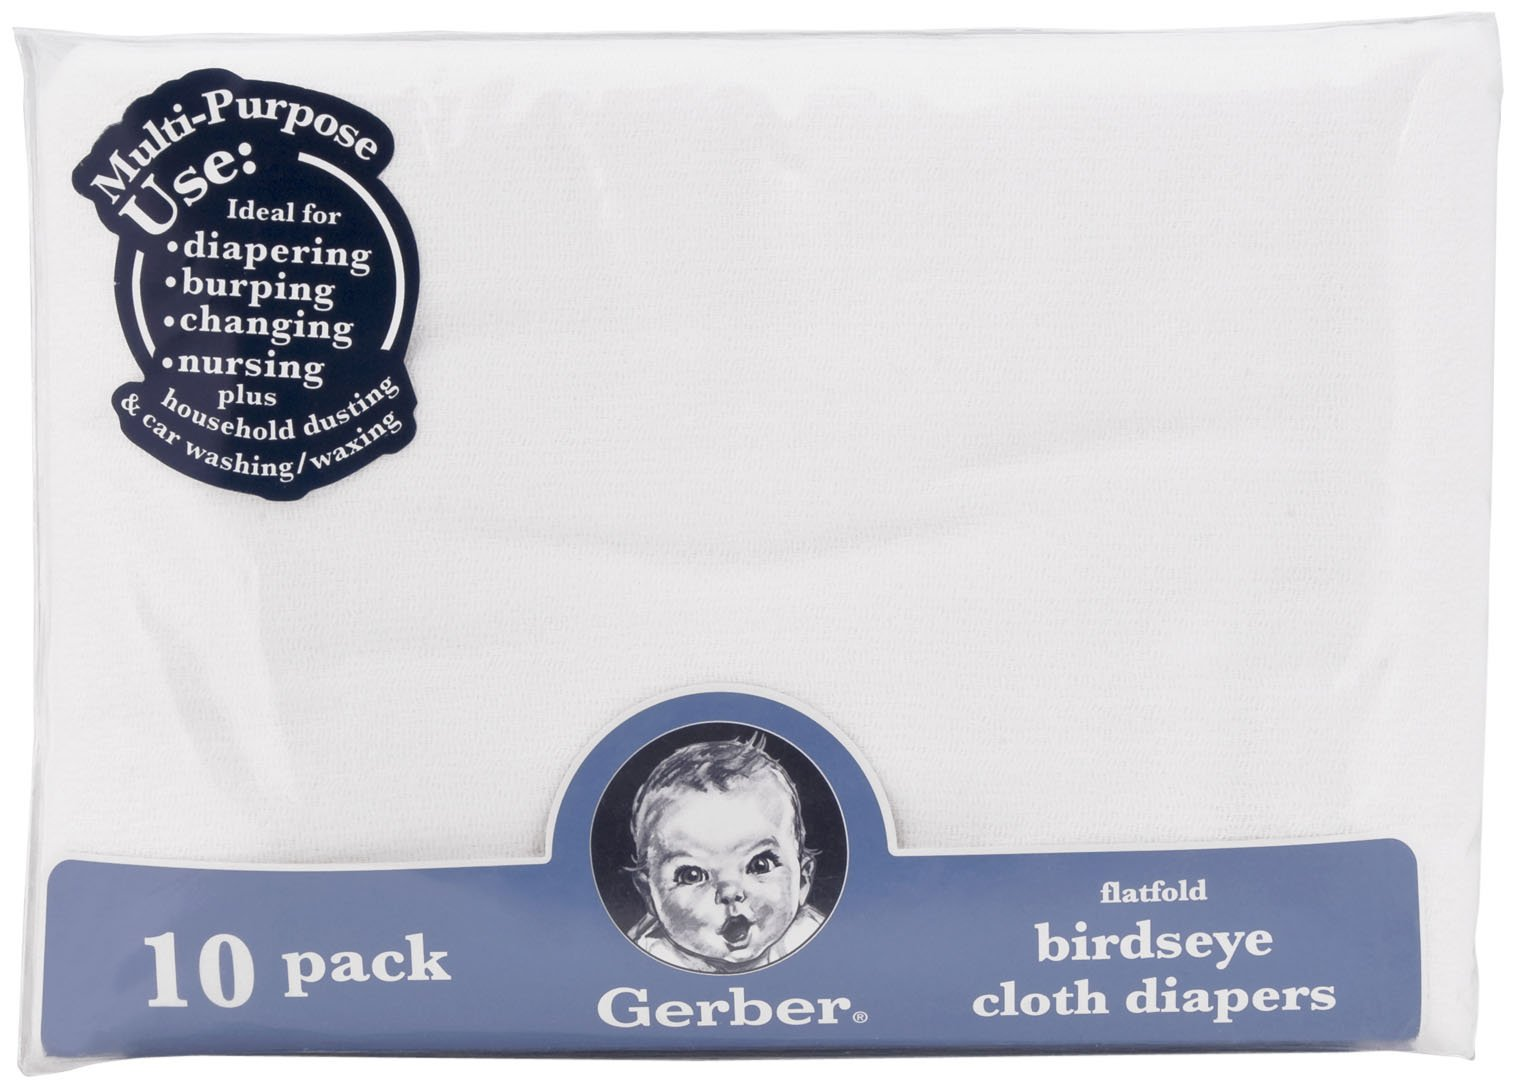 Gerber Flatfold Birdseye Cloth Diapers - 10pk